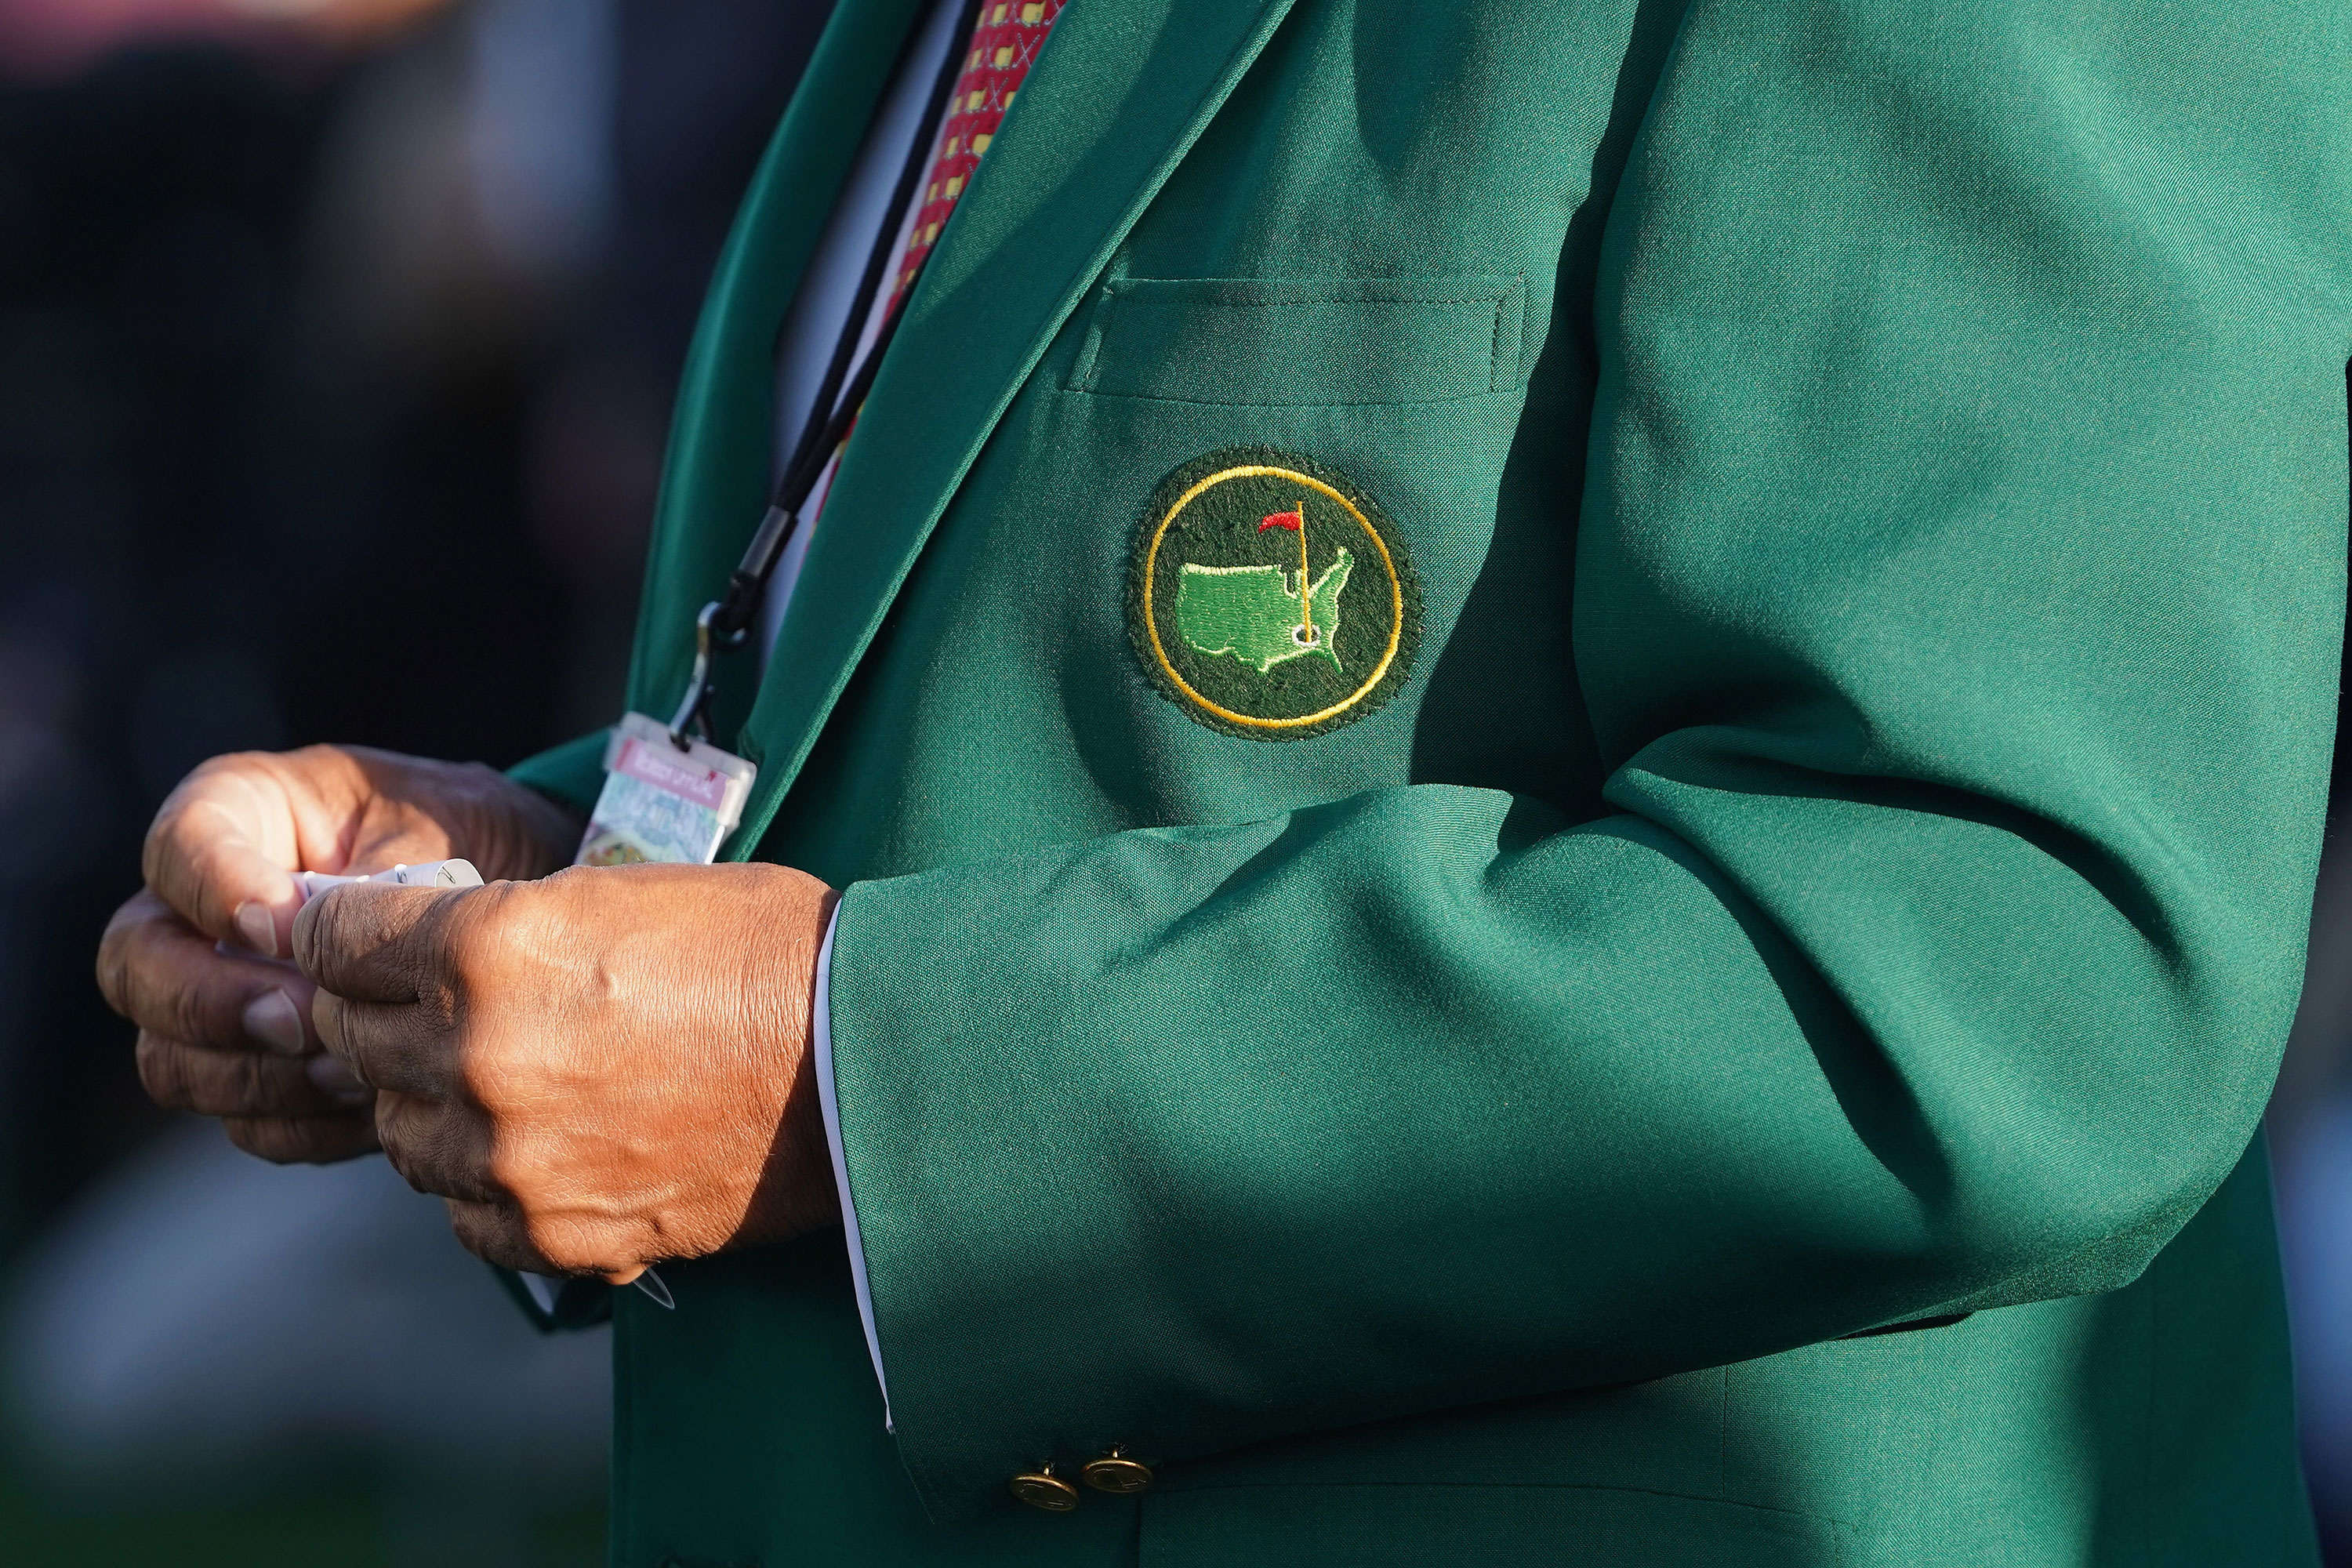 A Masters logo is seen on a jacket during the 2018 Masters Tournament in Augusta, Georgia.